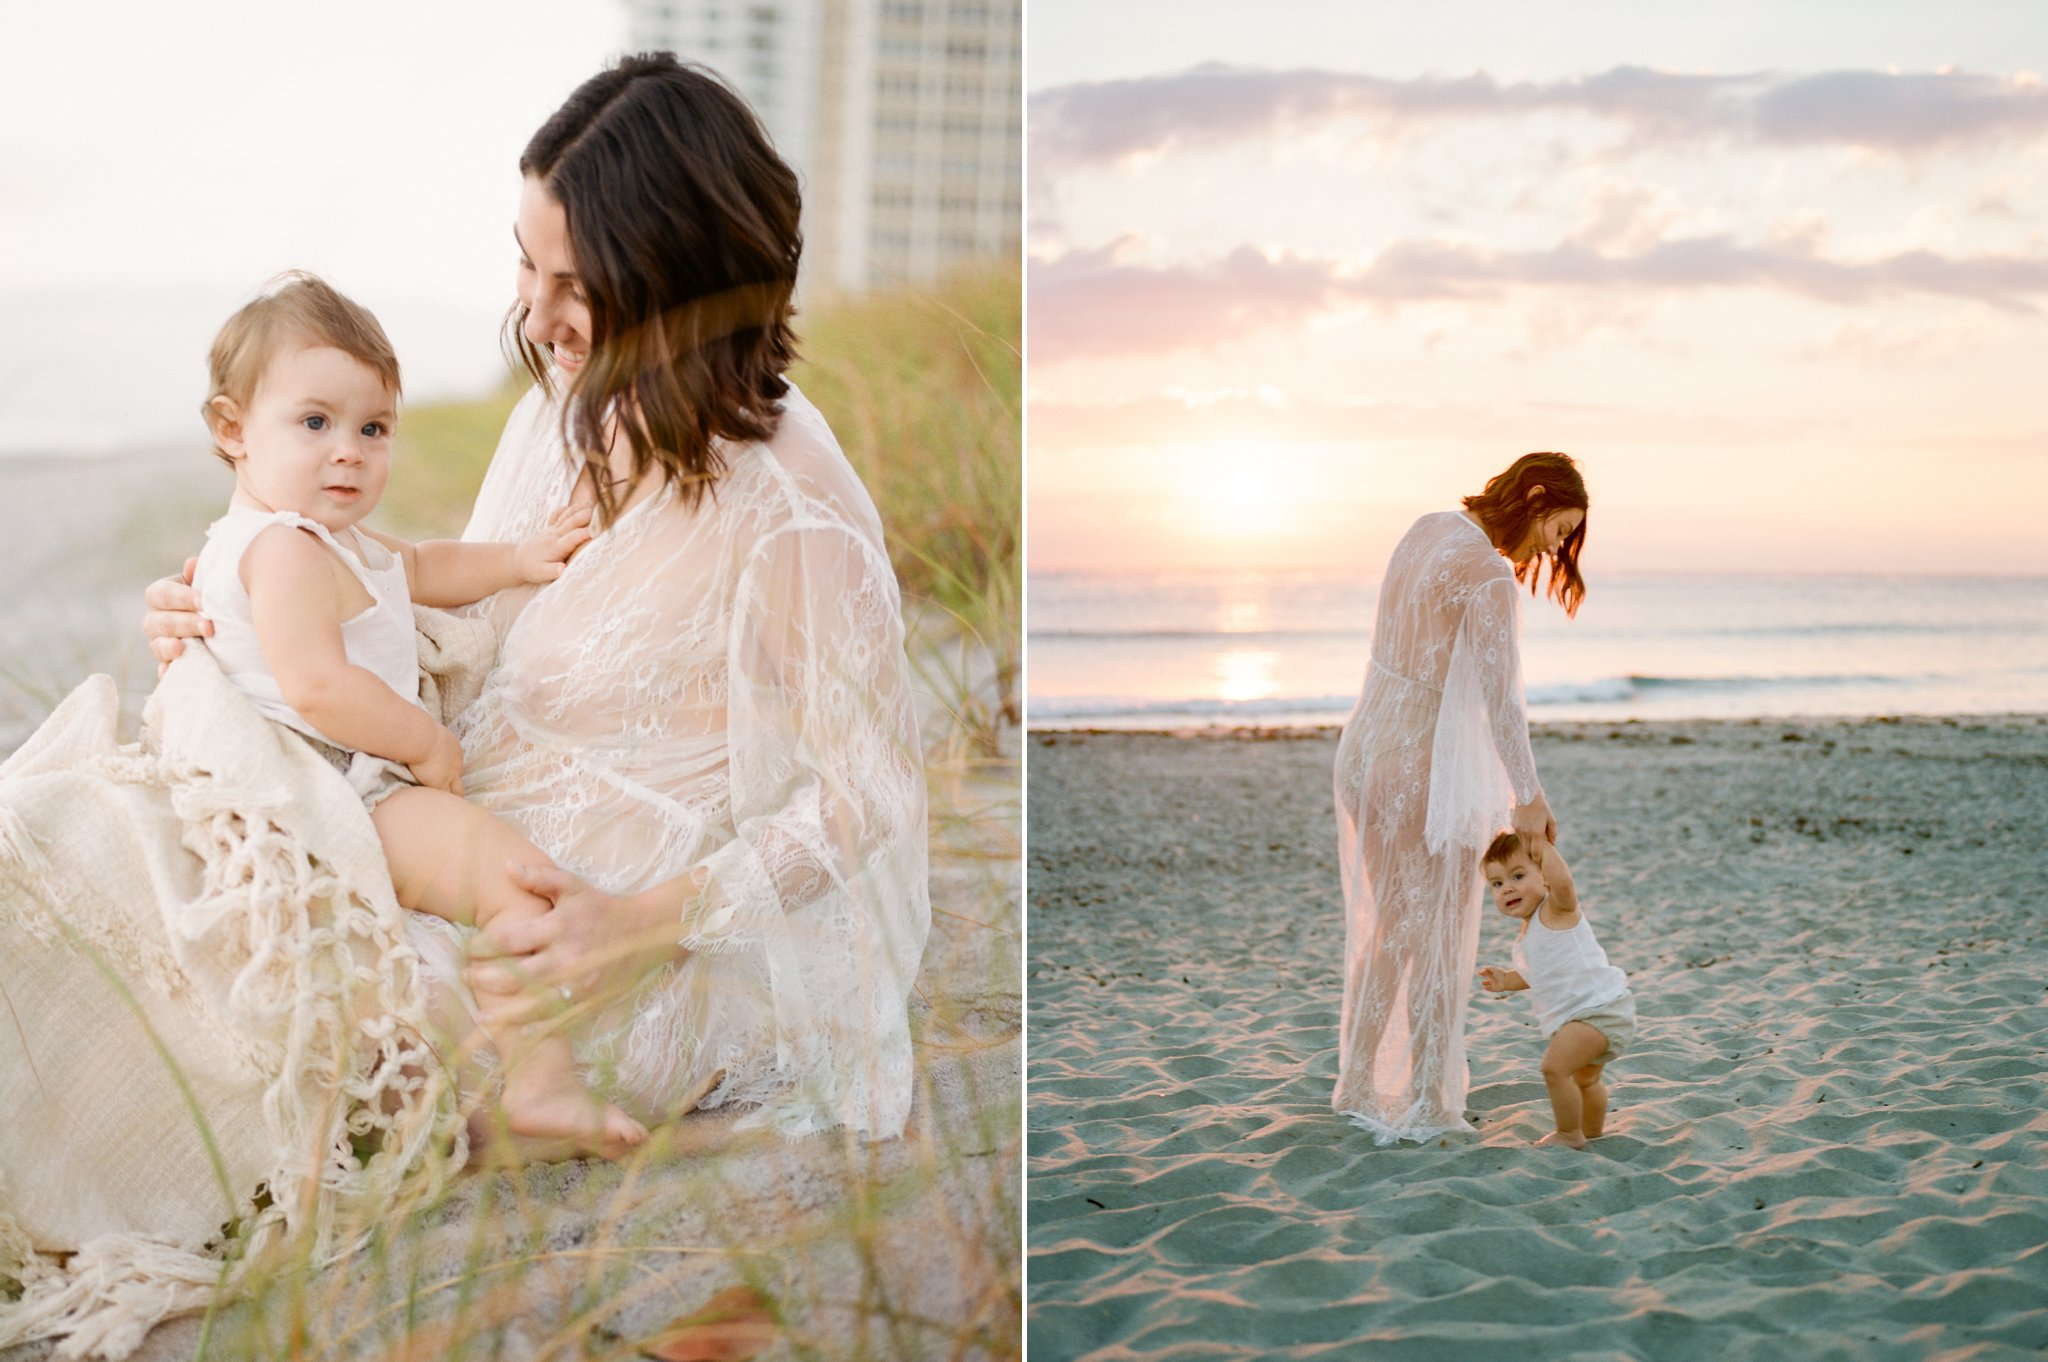 boca raton family photographer boca raton photographer shannon griffin photography_0019.jpg